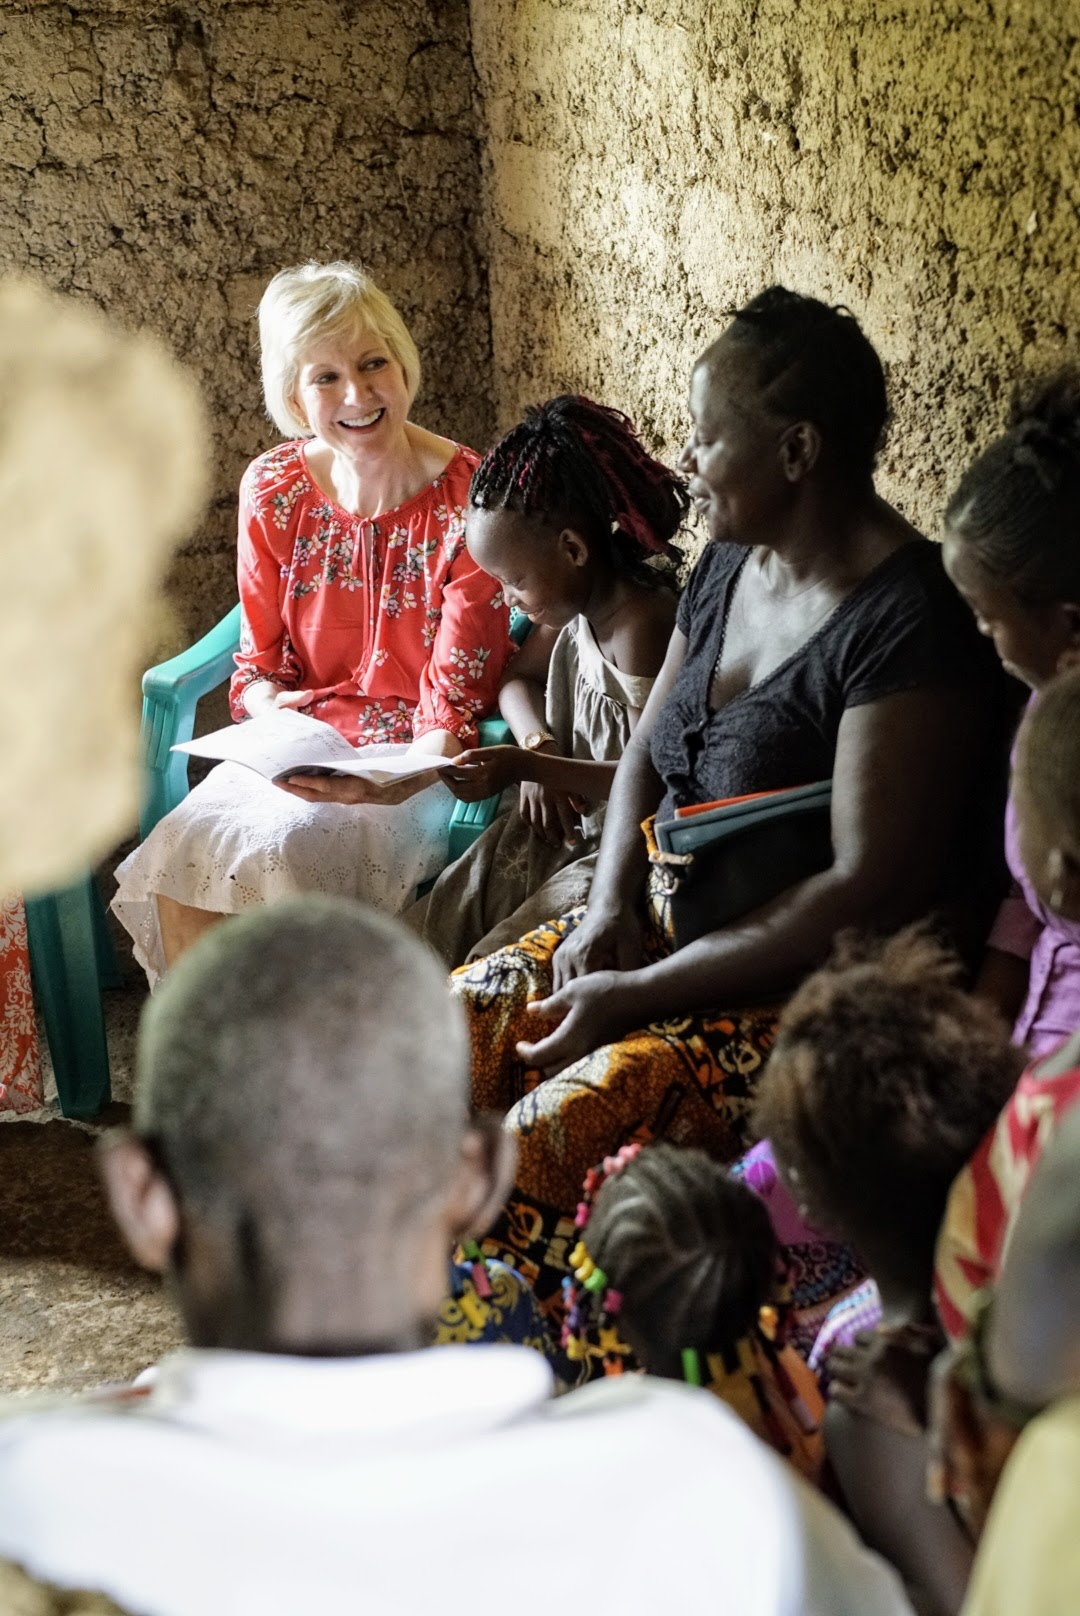 Sister Jean B. Bingham meets with members in their home in Sierra Leone during a recent 11-day trip from June 5 through June 16, 2019, to the West African country.